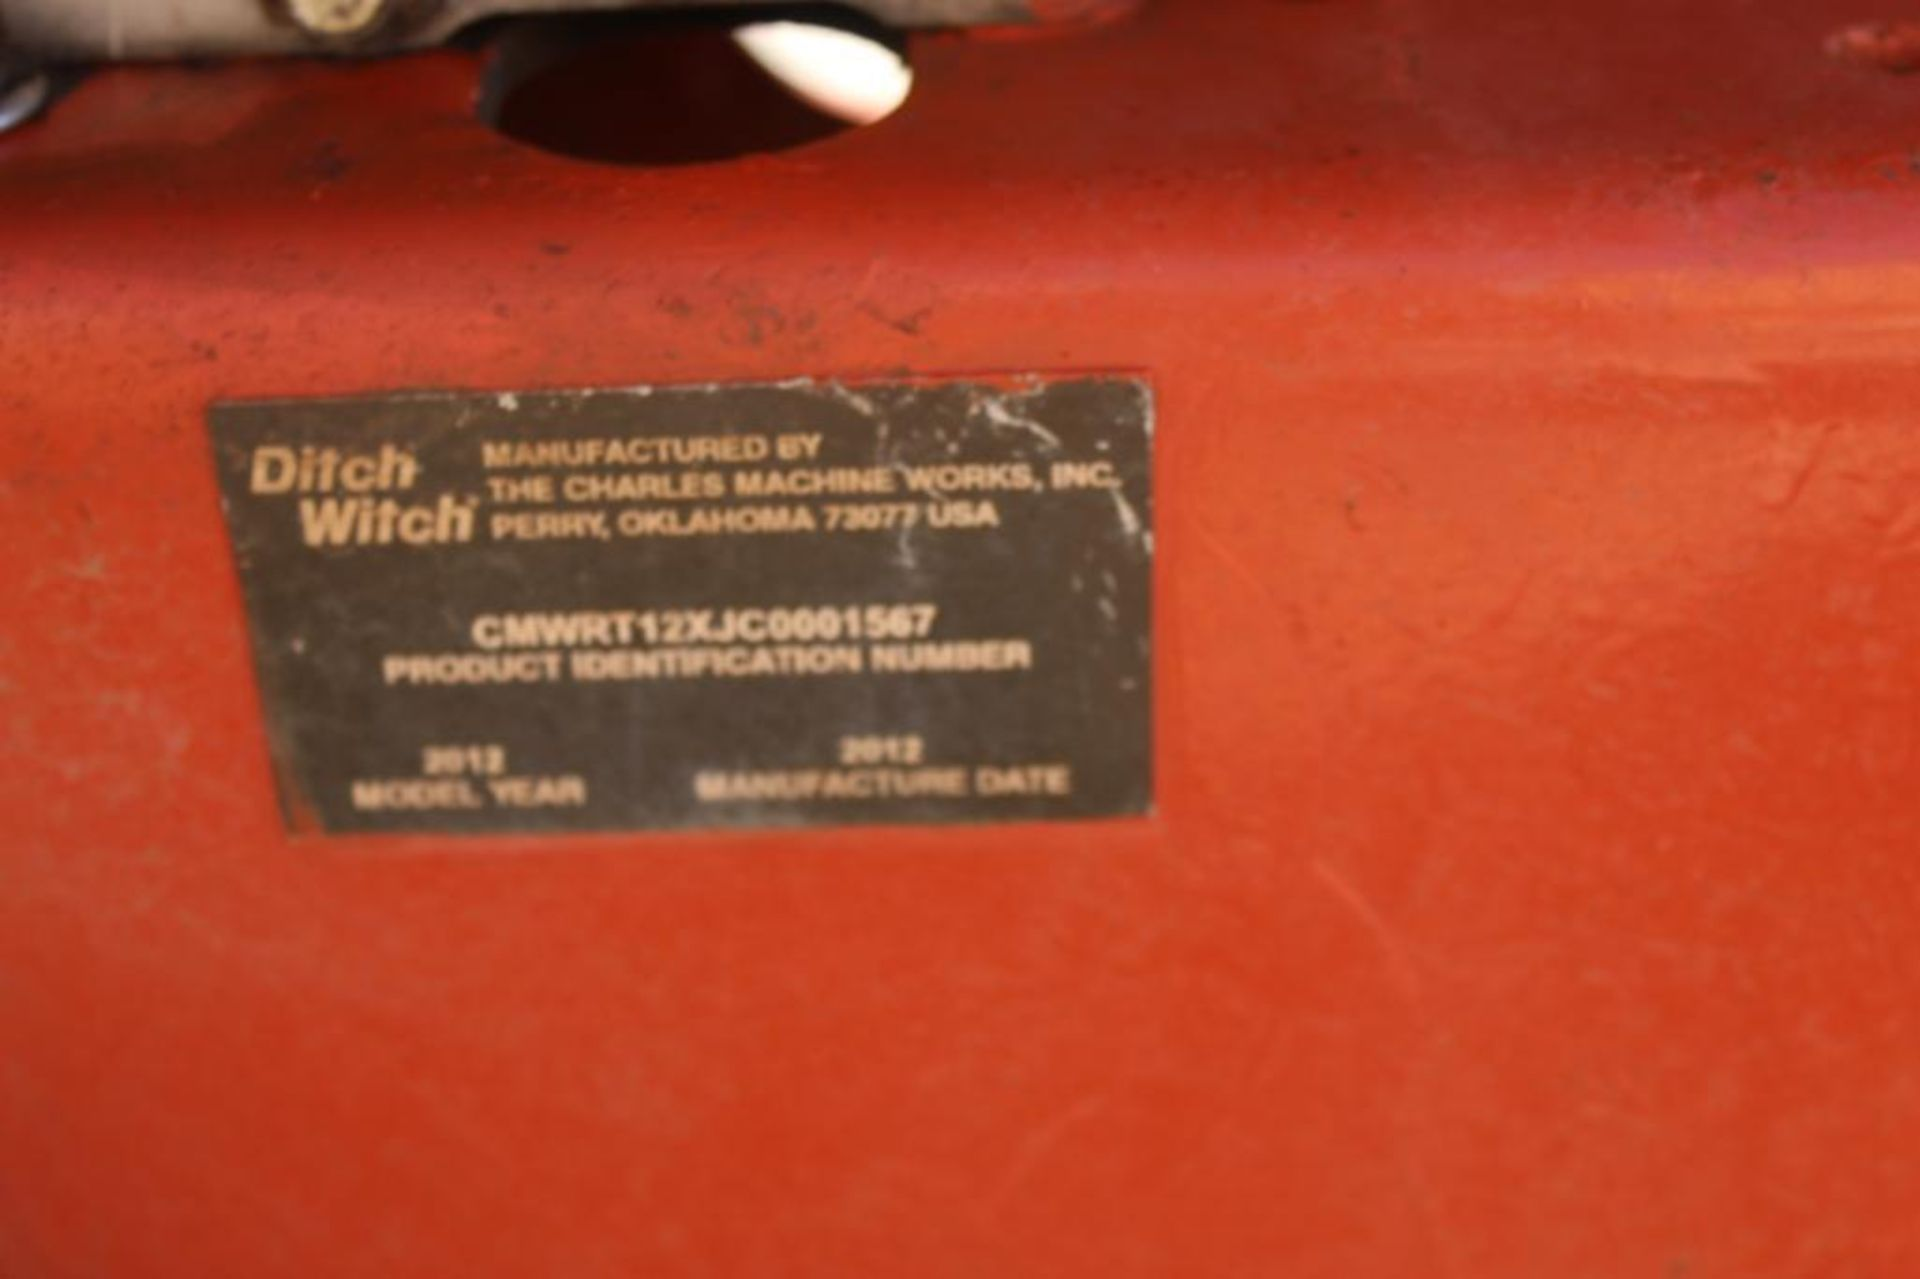 2012 Ditch Witch RT 12 Walk Behind Trencher, S/N CMWRT12JC0001567, 260 Indicated Hours - Image 4 of 4